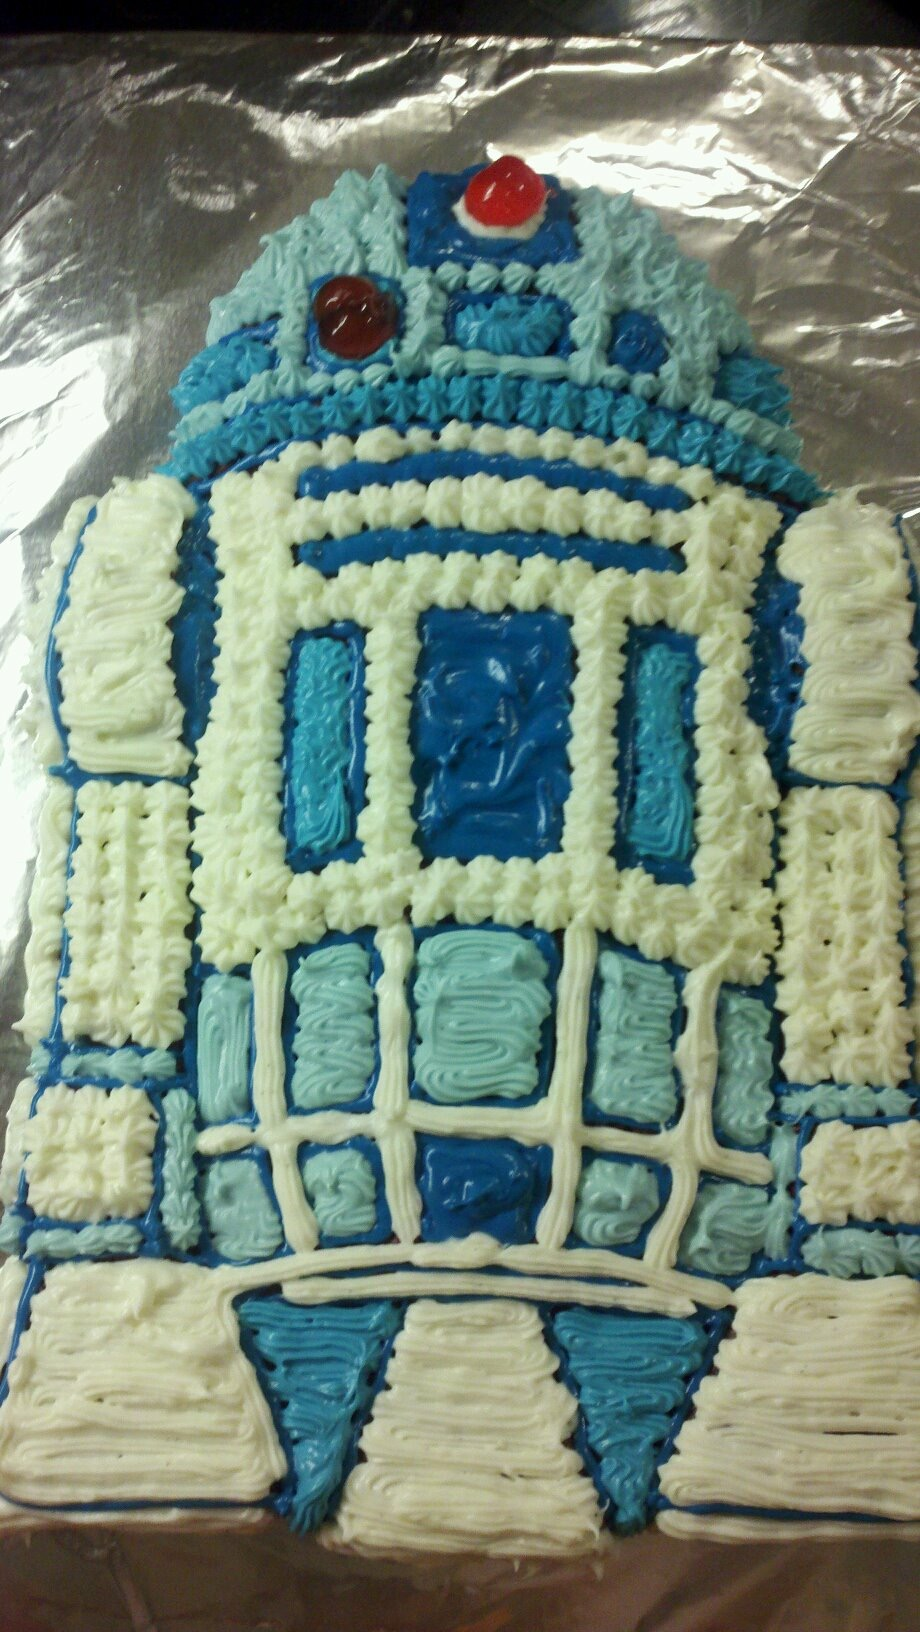 Move along. - This is not the red velvet birthday cake you are looking for.